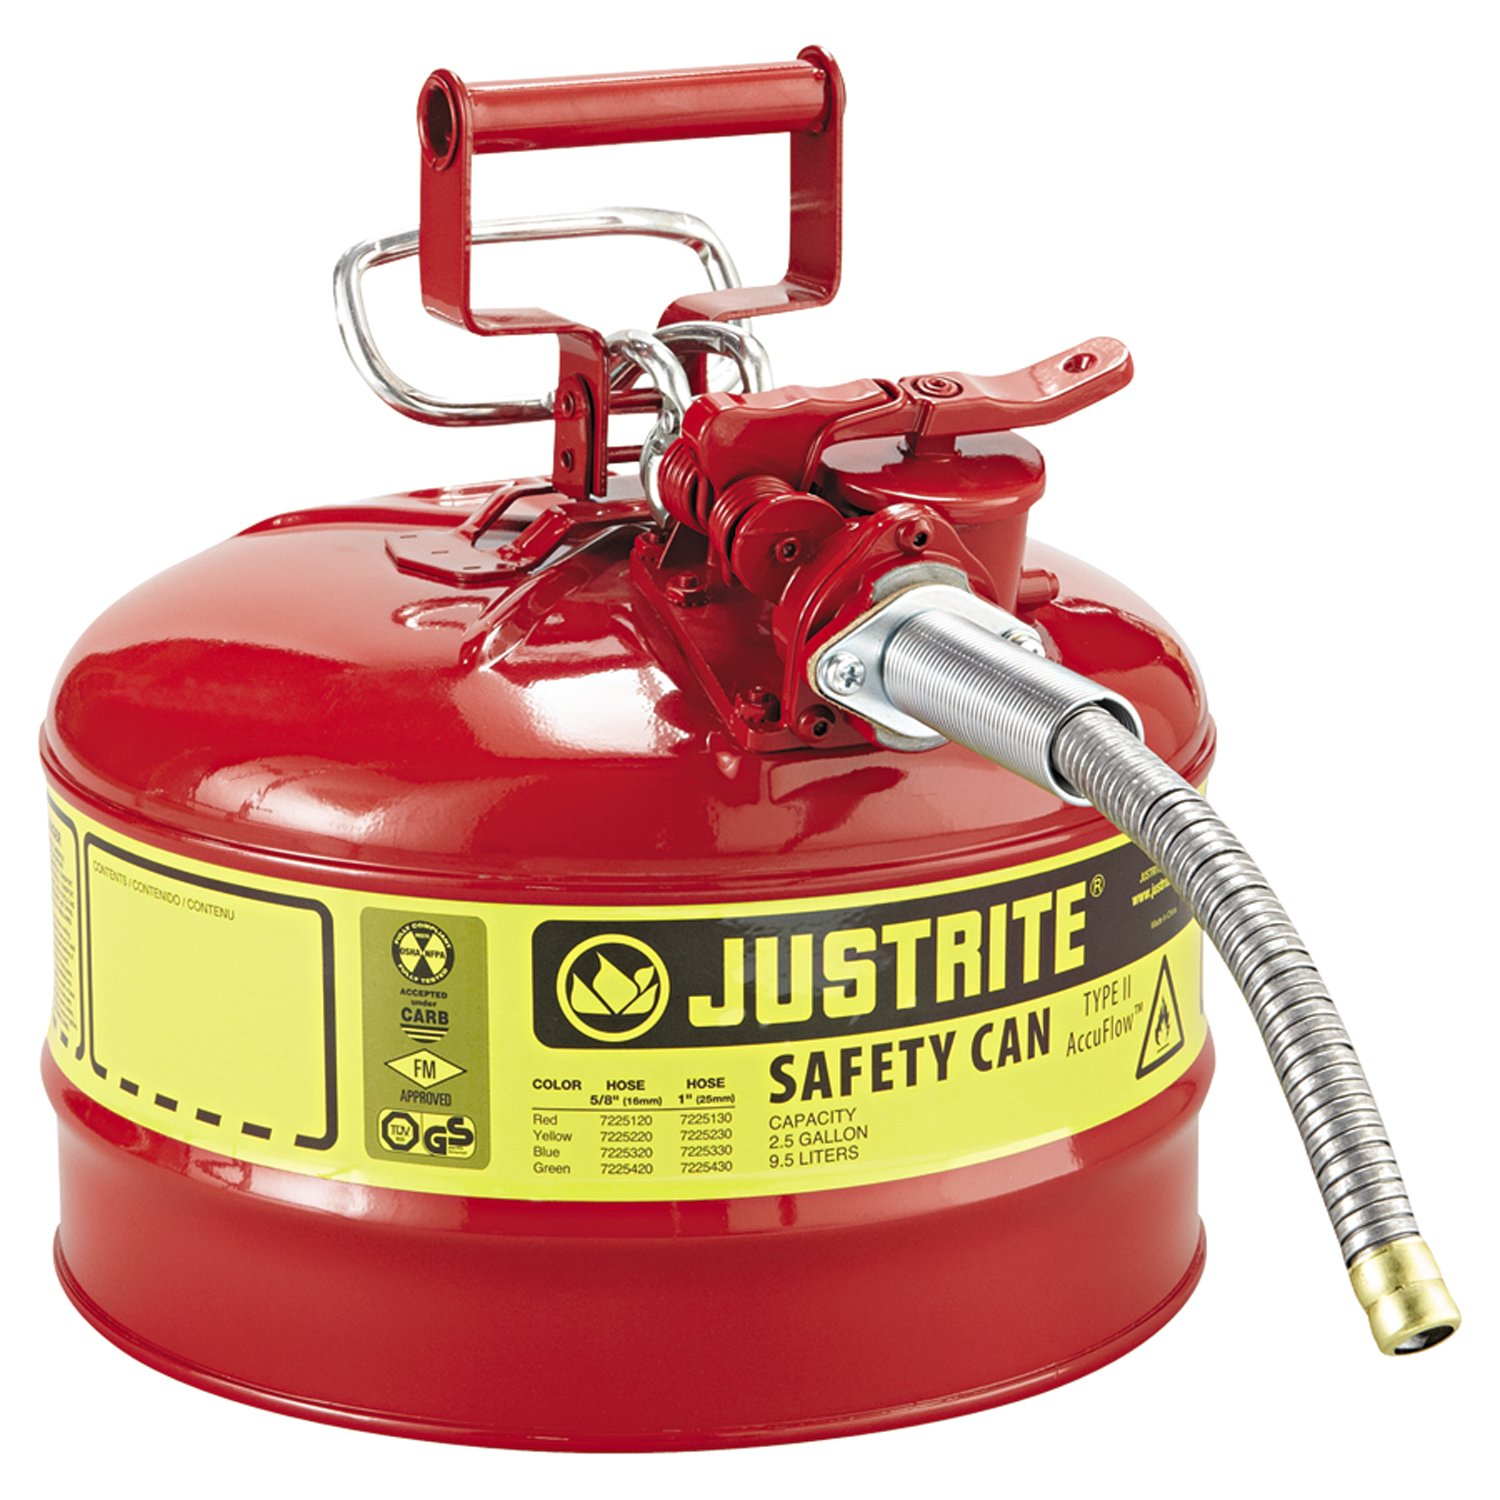 """Justrite 7225120 AccuFlow 2.5 Gallon, 11.75"""" OD x 12"""" H Galvanized Steel Type II Red Safety Can With 5/8"""" Flexible Spout: Lawn And Garden Tool Gas Cans: Industrial & Scientific"""